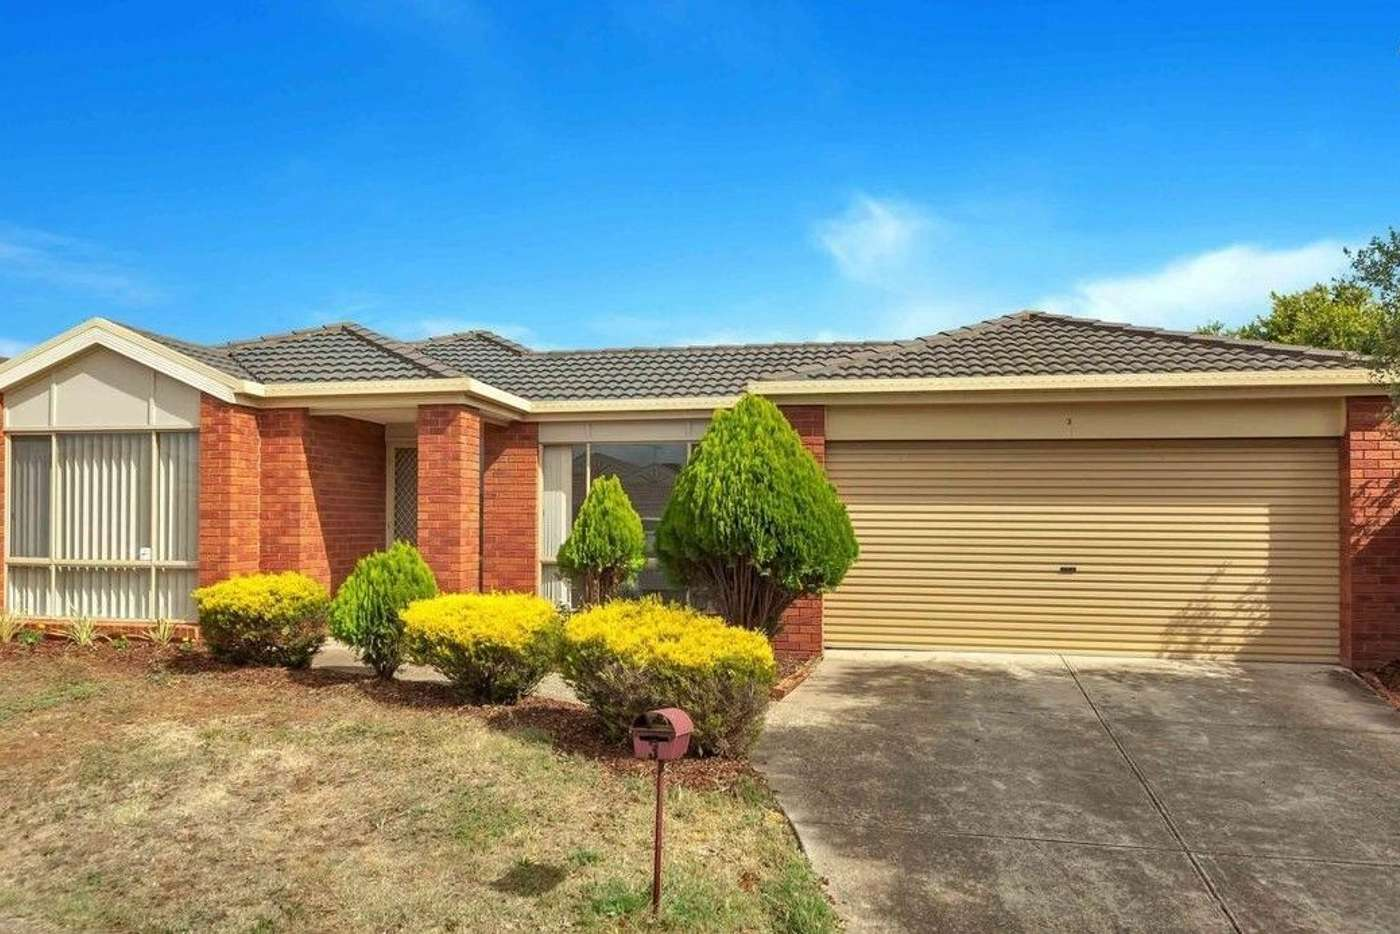 Main view of Homely house listing, 3 Breton Drive, Hoppers Crossing VIC 3029